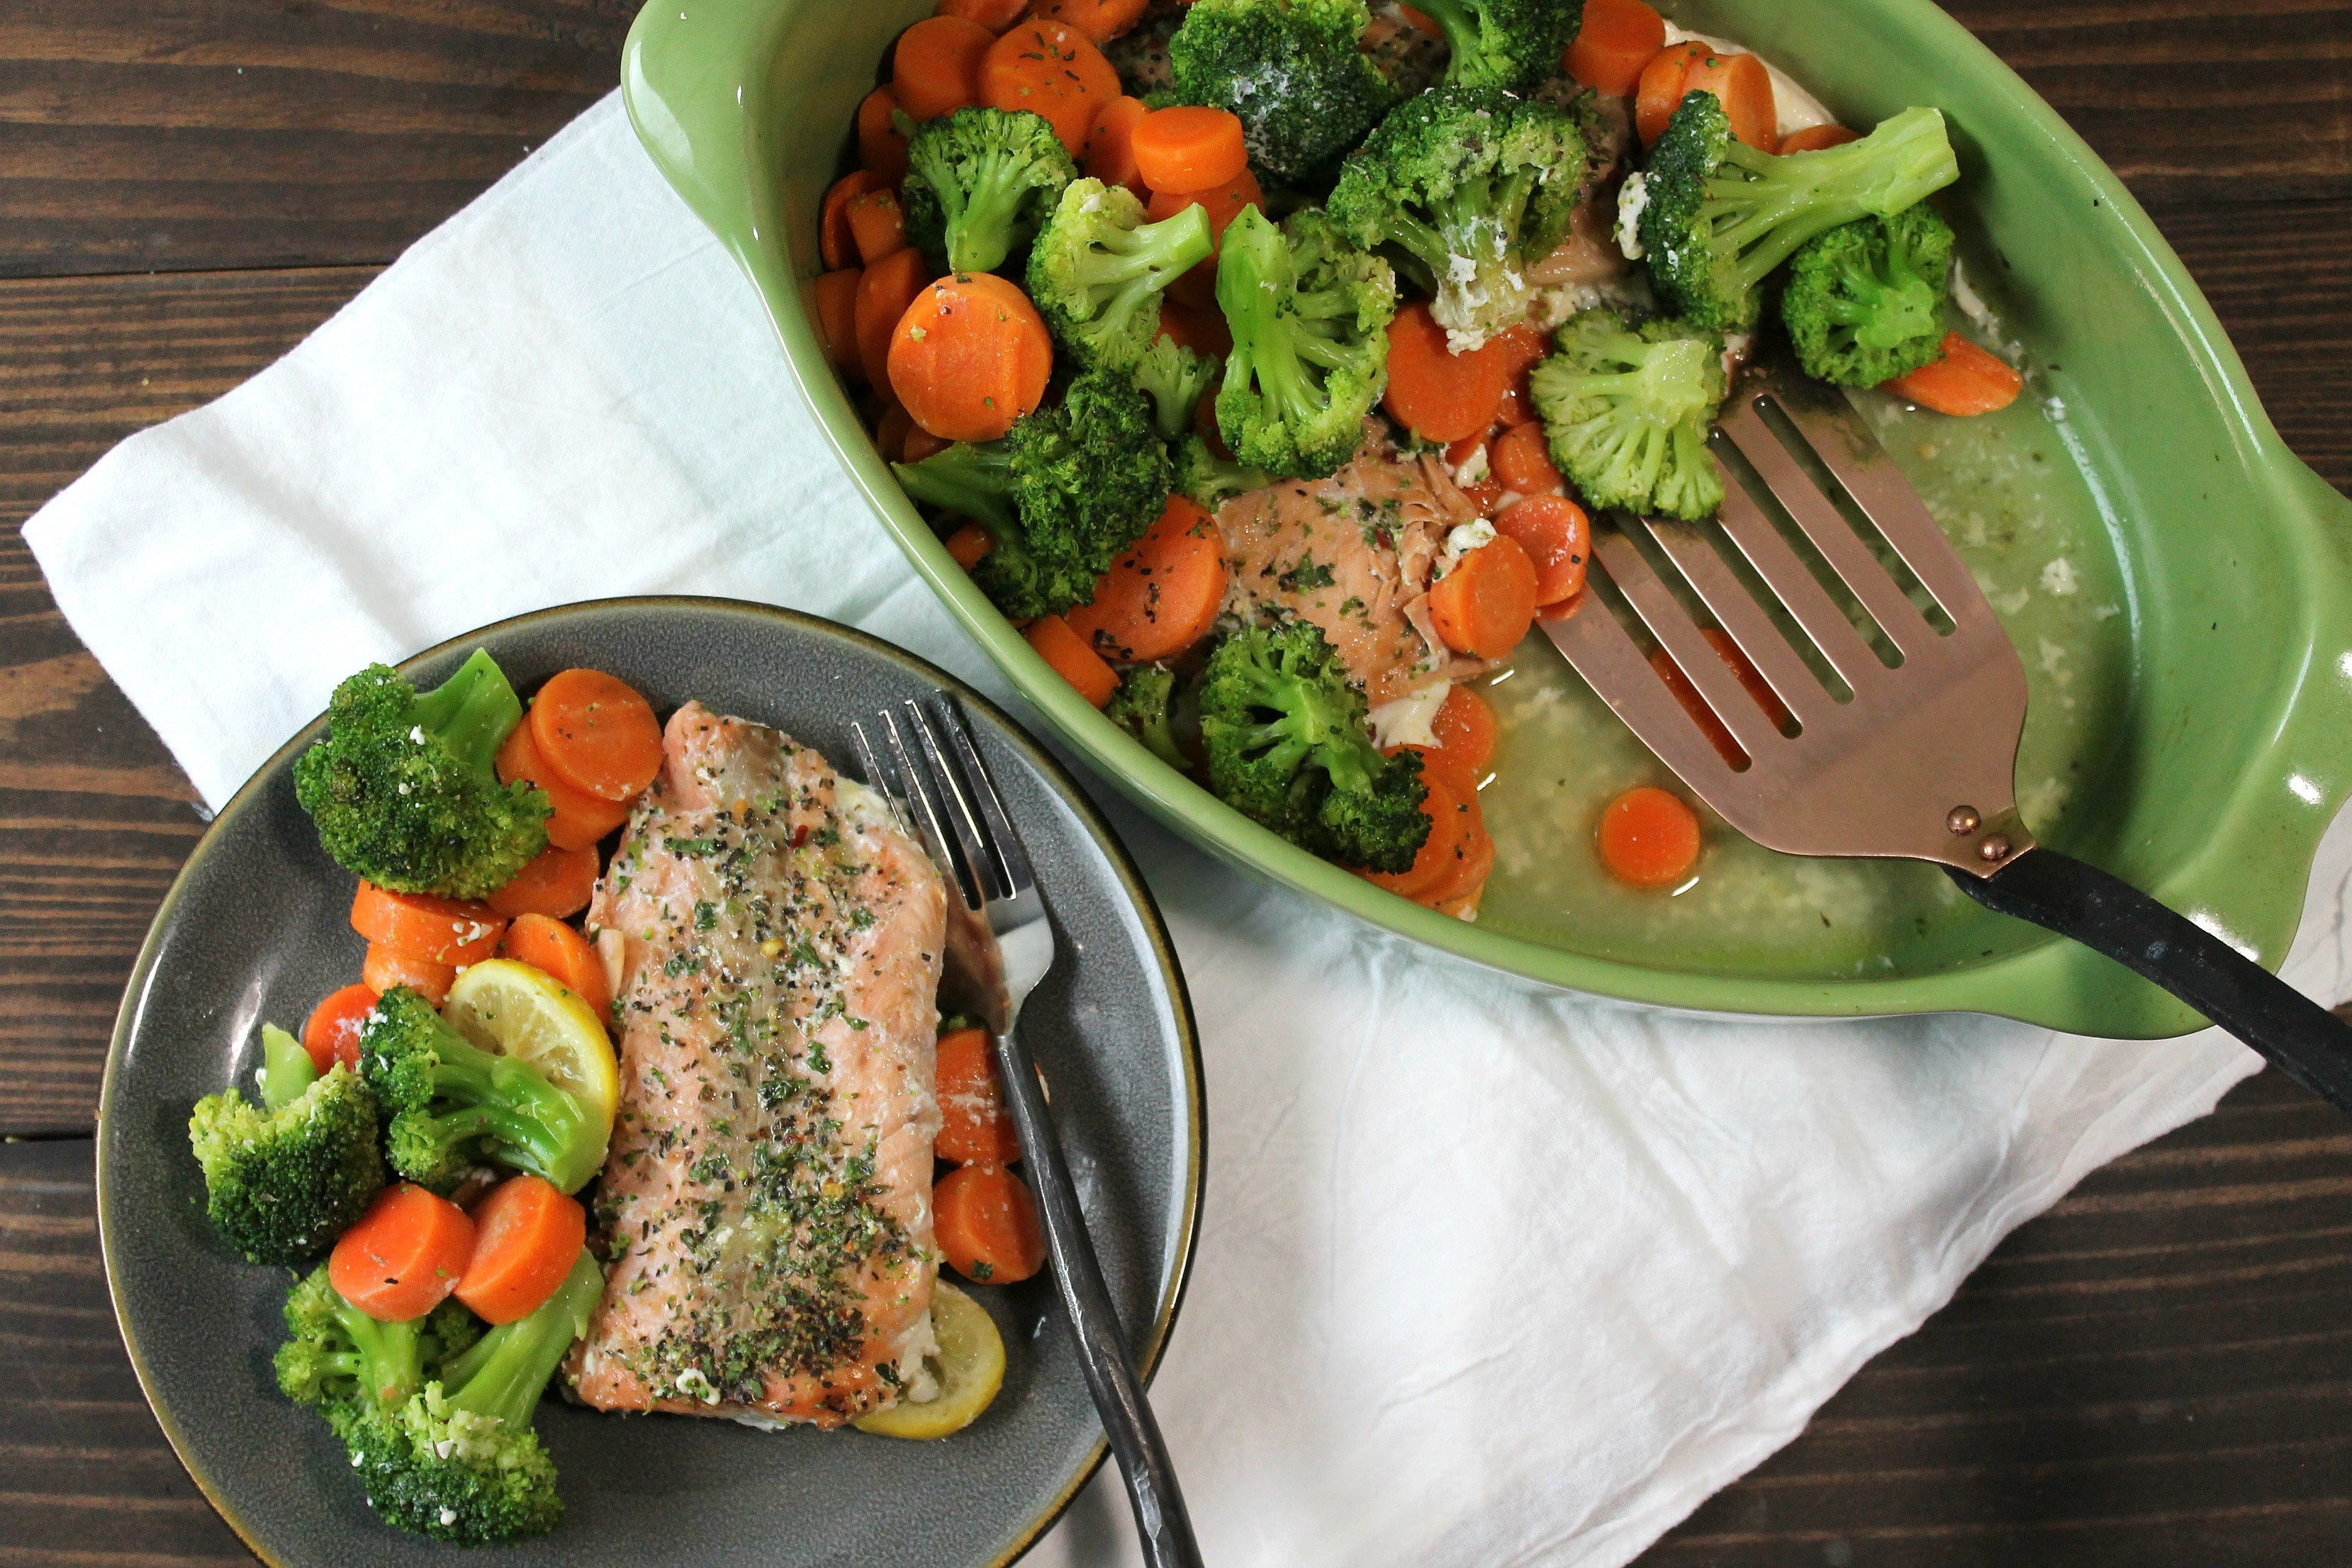 Light Healthy Dinner  Light and Healthy Salmon Dinner 5 Dinners In 1 Hour